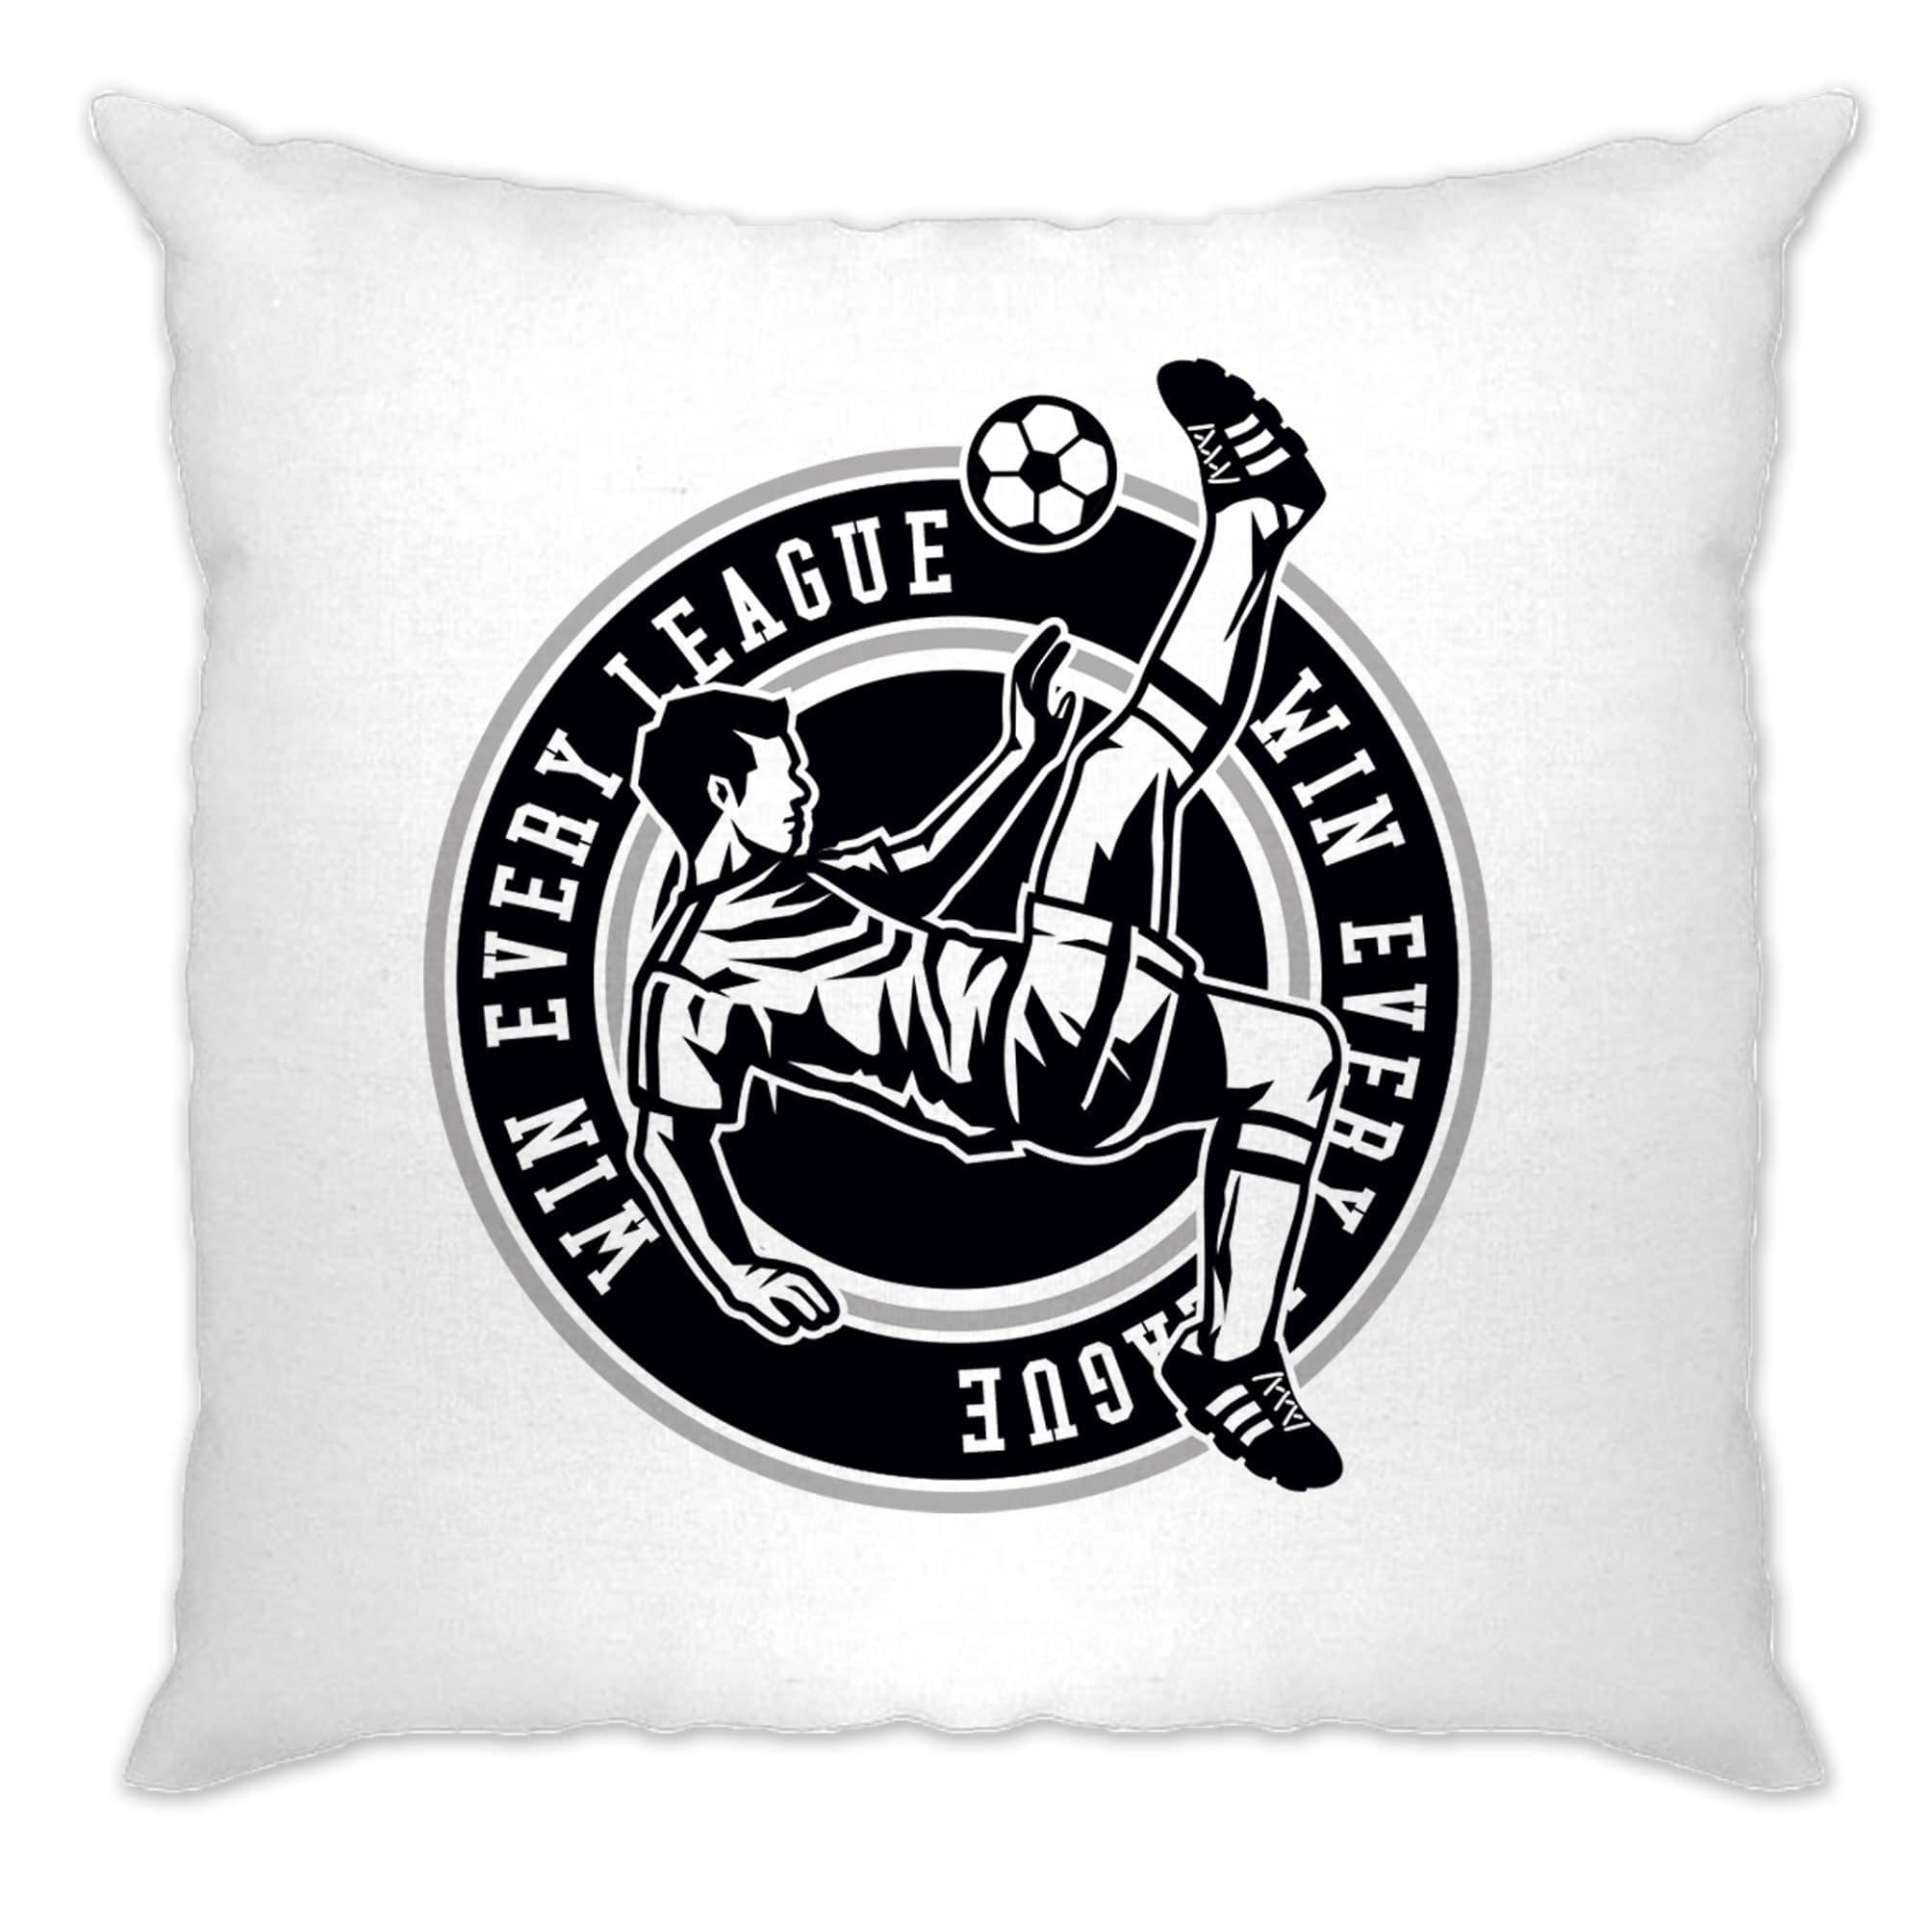 Football Cushion Cover Win The League Motivation